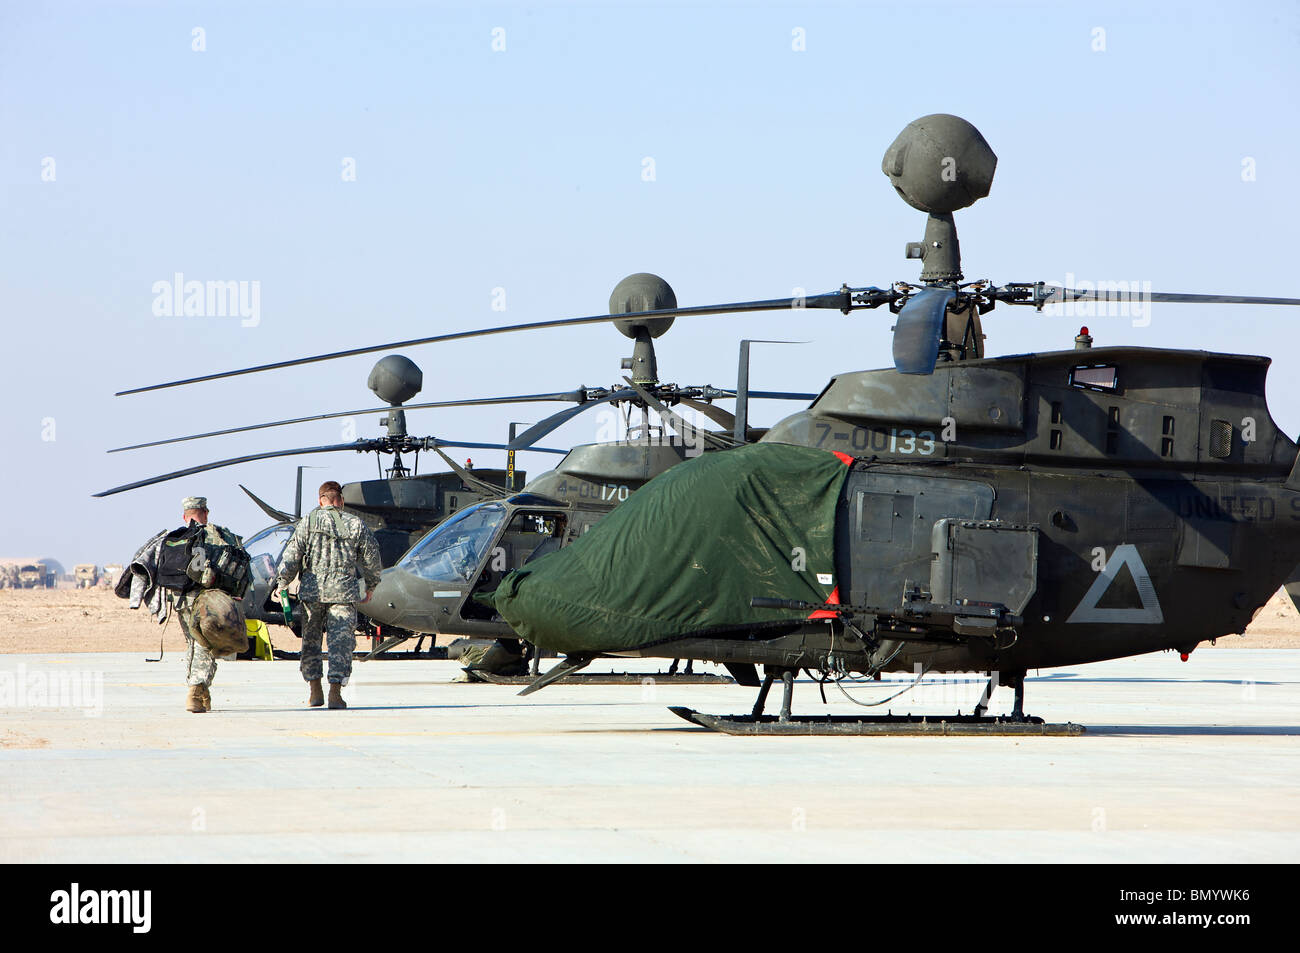 OH-58D Kiowa Warrior helicopters parked at Camp Speicher, Iraq. - Stock Image